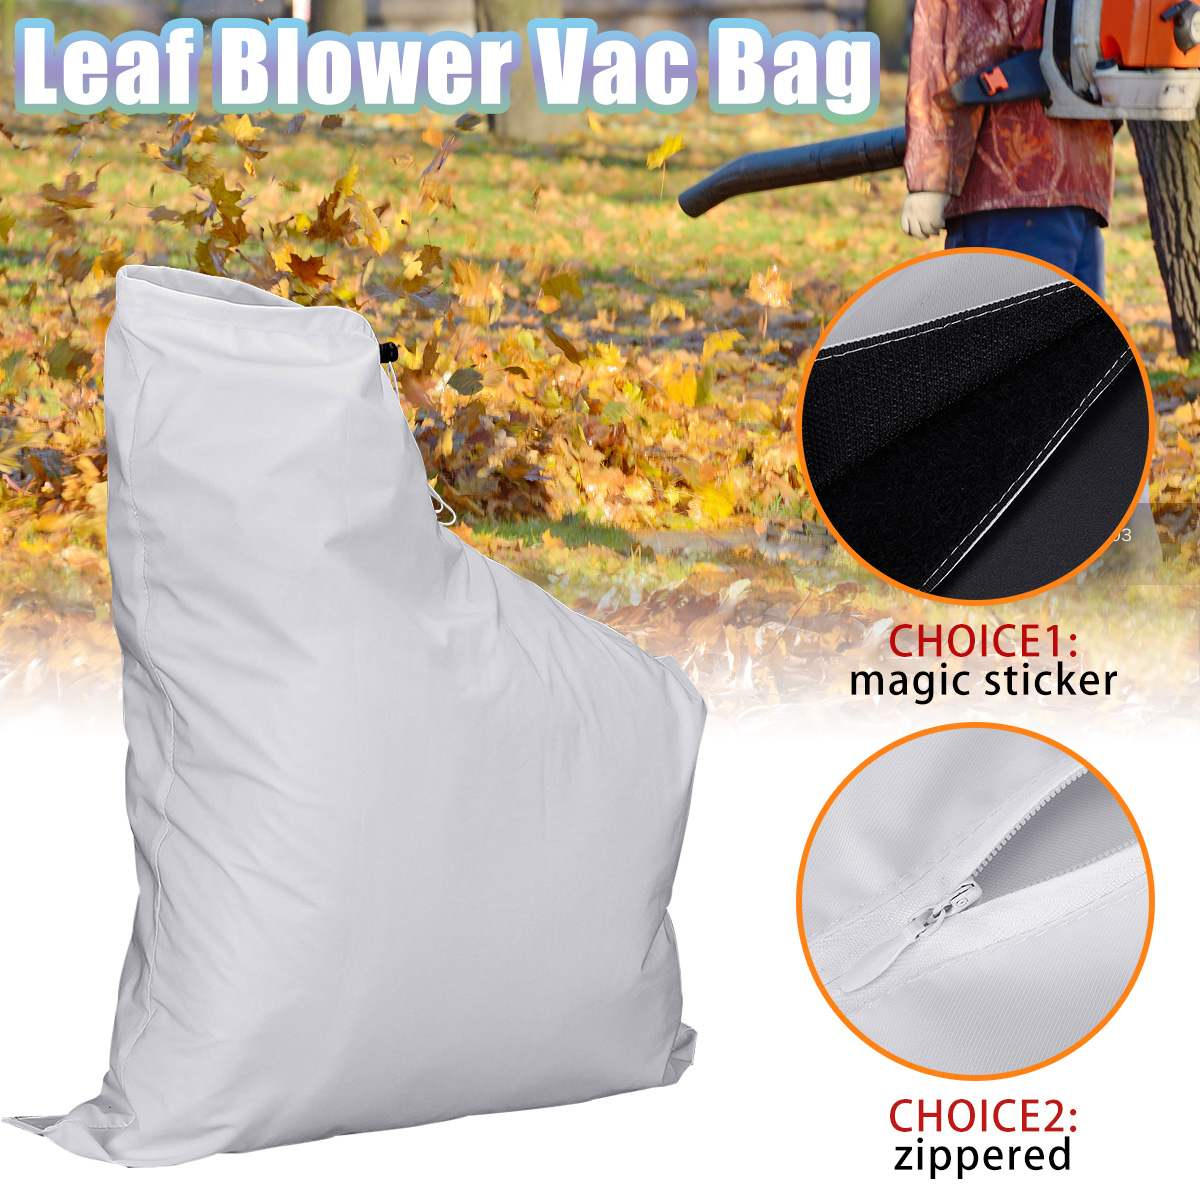 Leaf Blower Vacuum Bag Fit For Weed Eater Barracuda 2595 Type 1 Lawn Yard Shredder Garden Tool Storage Bag Accessories